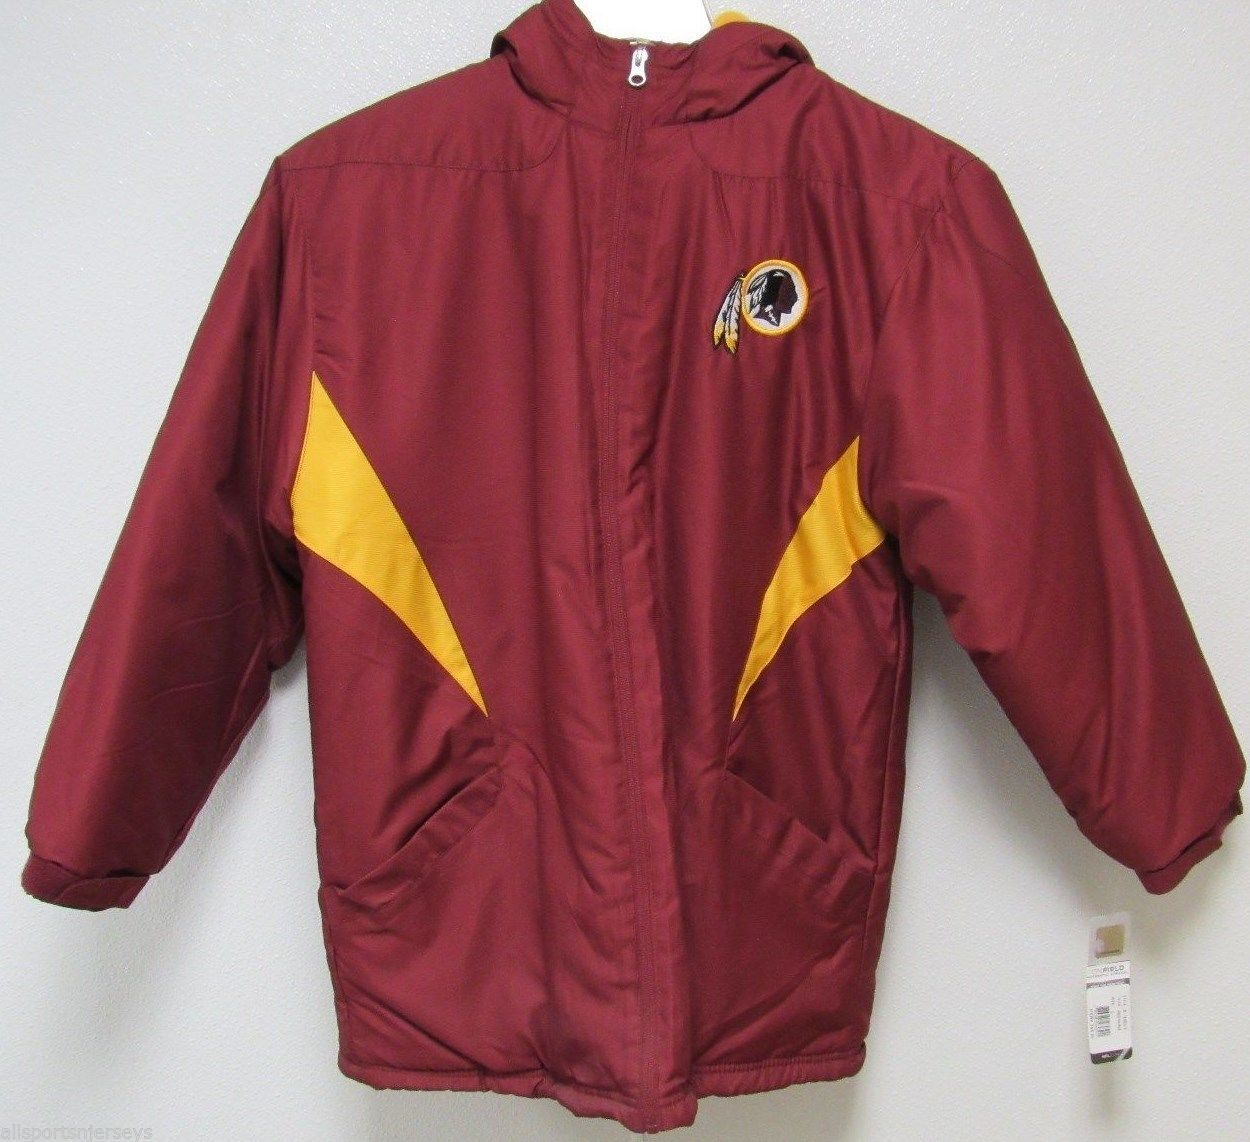 size 40 ab72c 72f6d Nwt Nfl Washington Redskins Sideline Jacket and 50 similar items